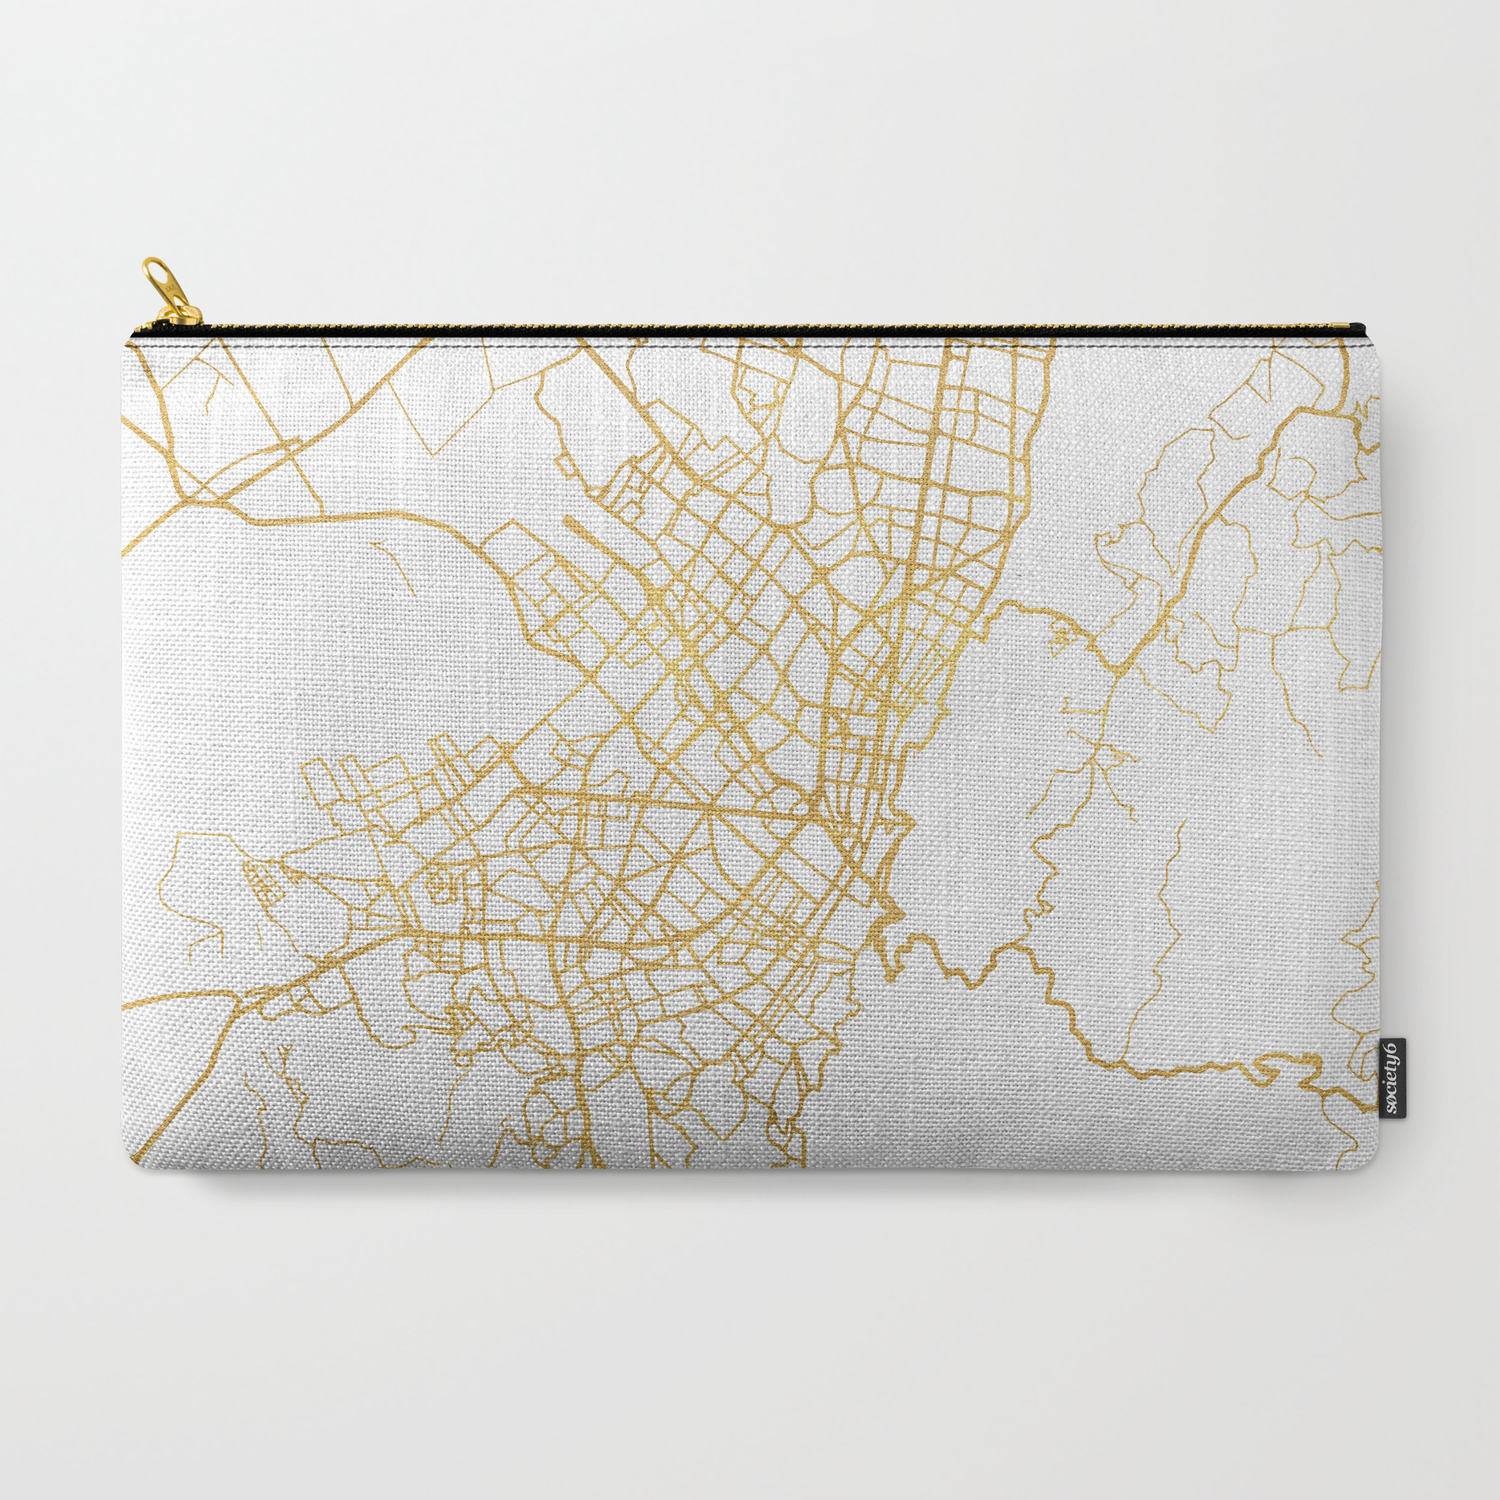 BOGOTA COLOMBIA CITY STREET MAP ART Carry-All Pouch